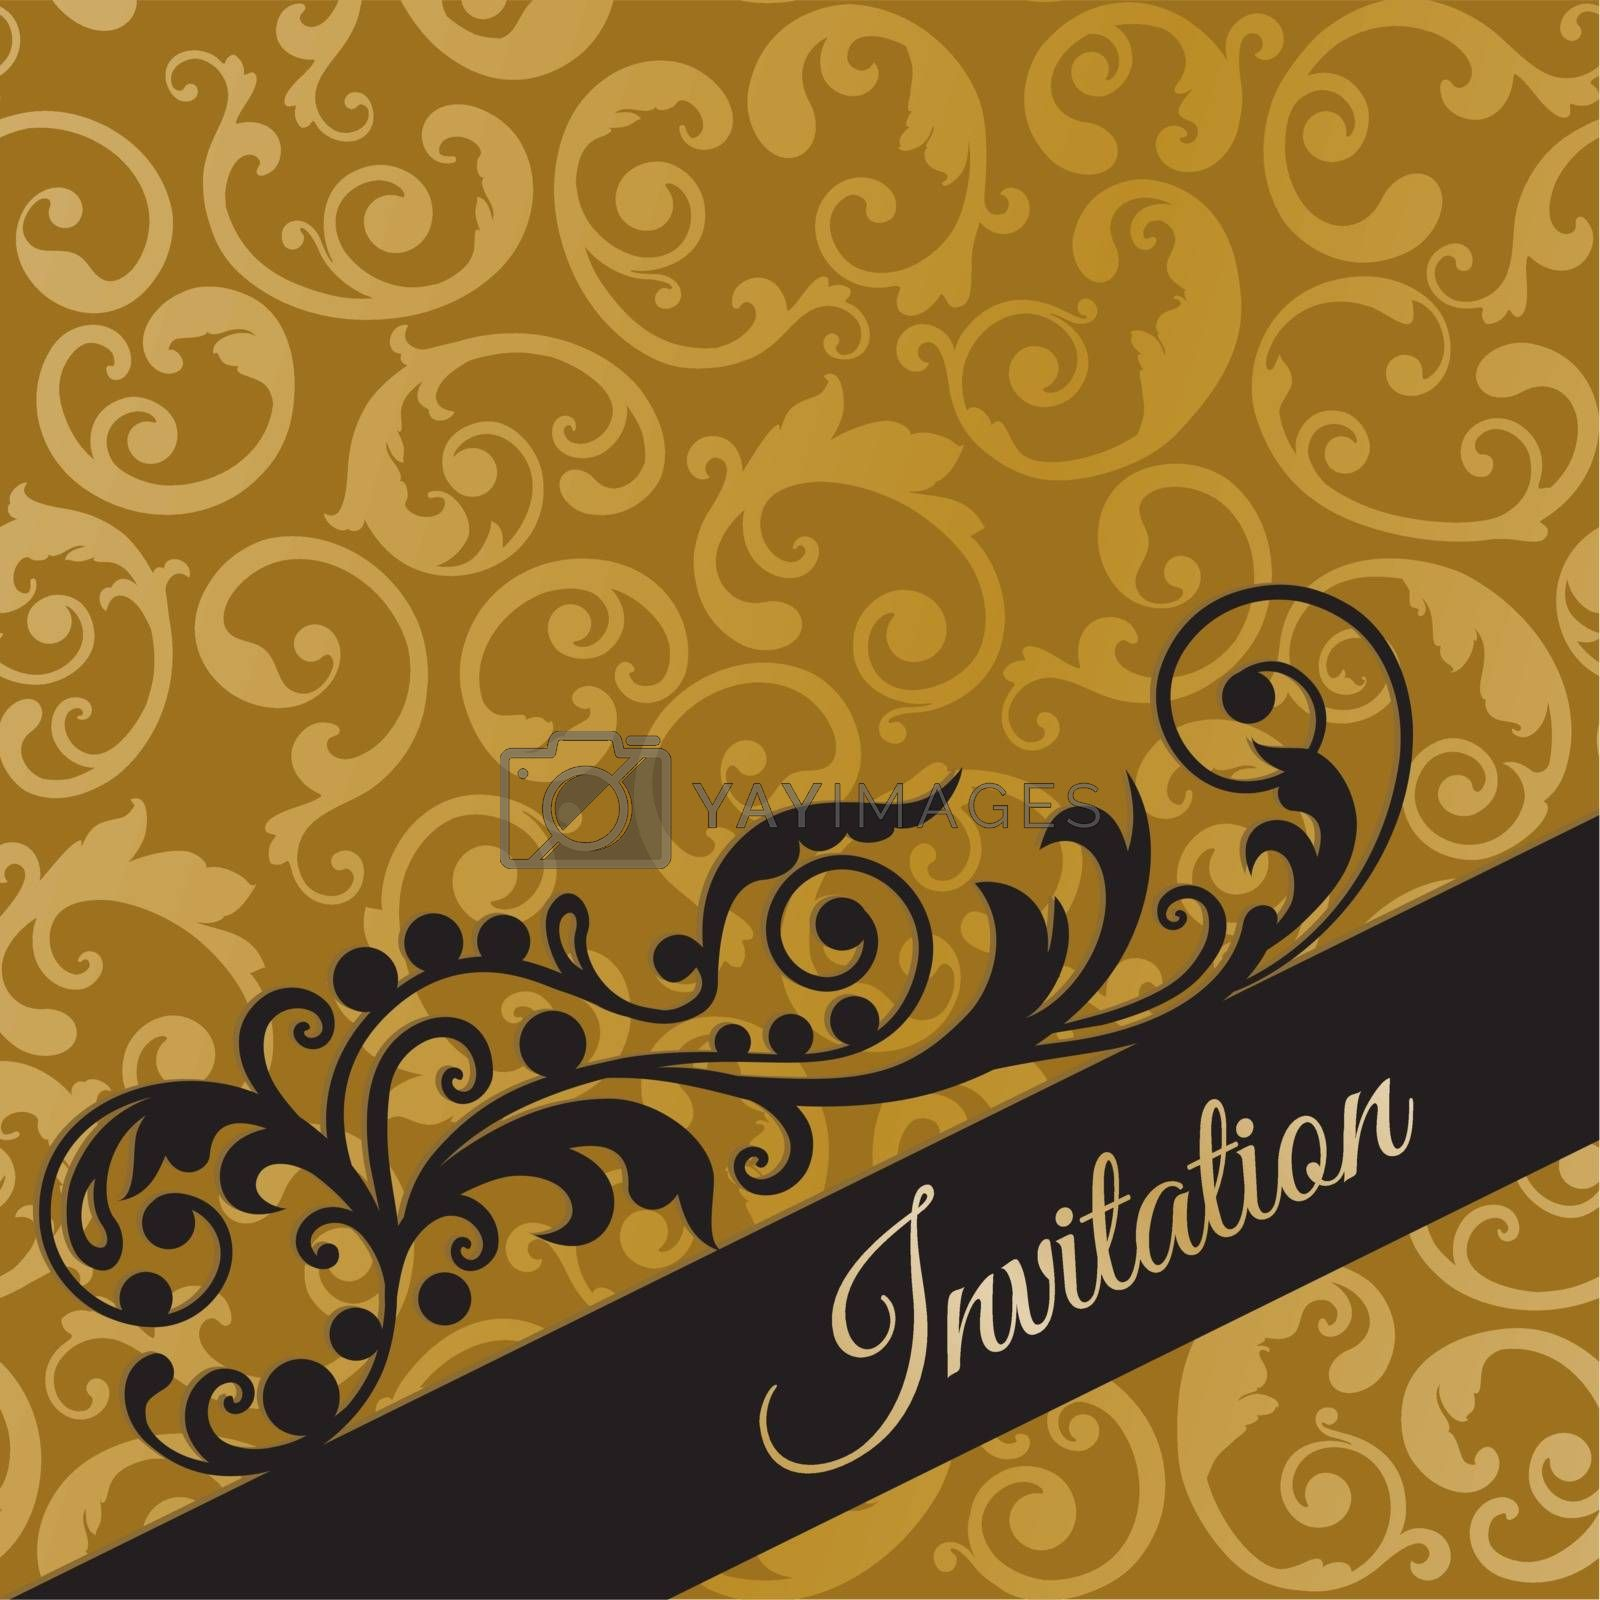 Luxury black and gold invitation card with swirls Royalty Free Stock Image  | YAYIMAGES - Royalty Free Stock Photos and Vectors